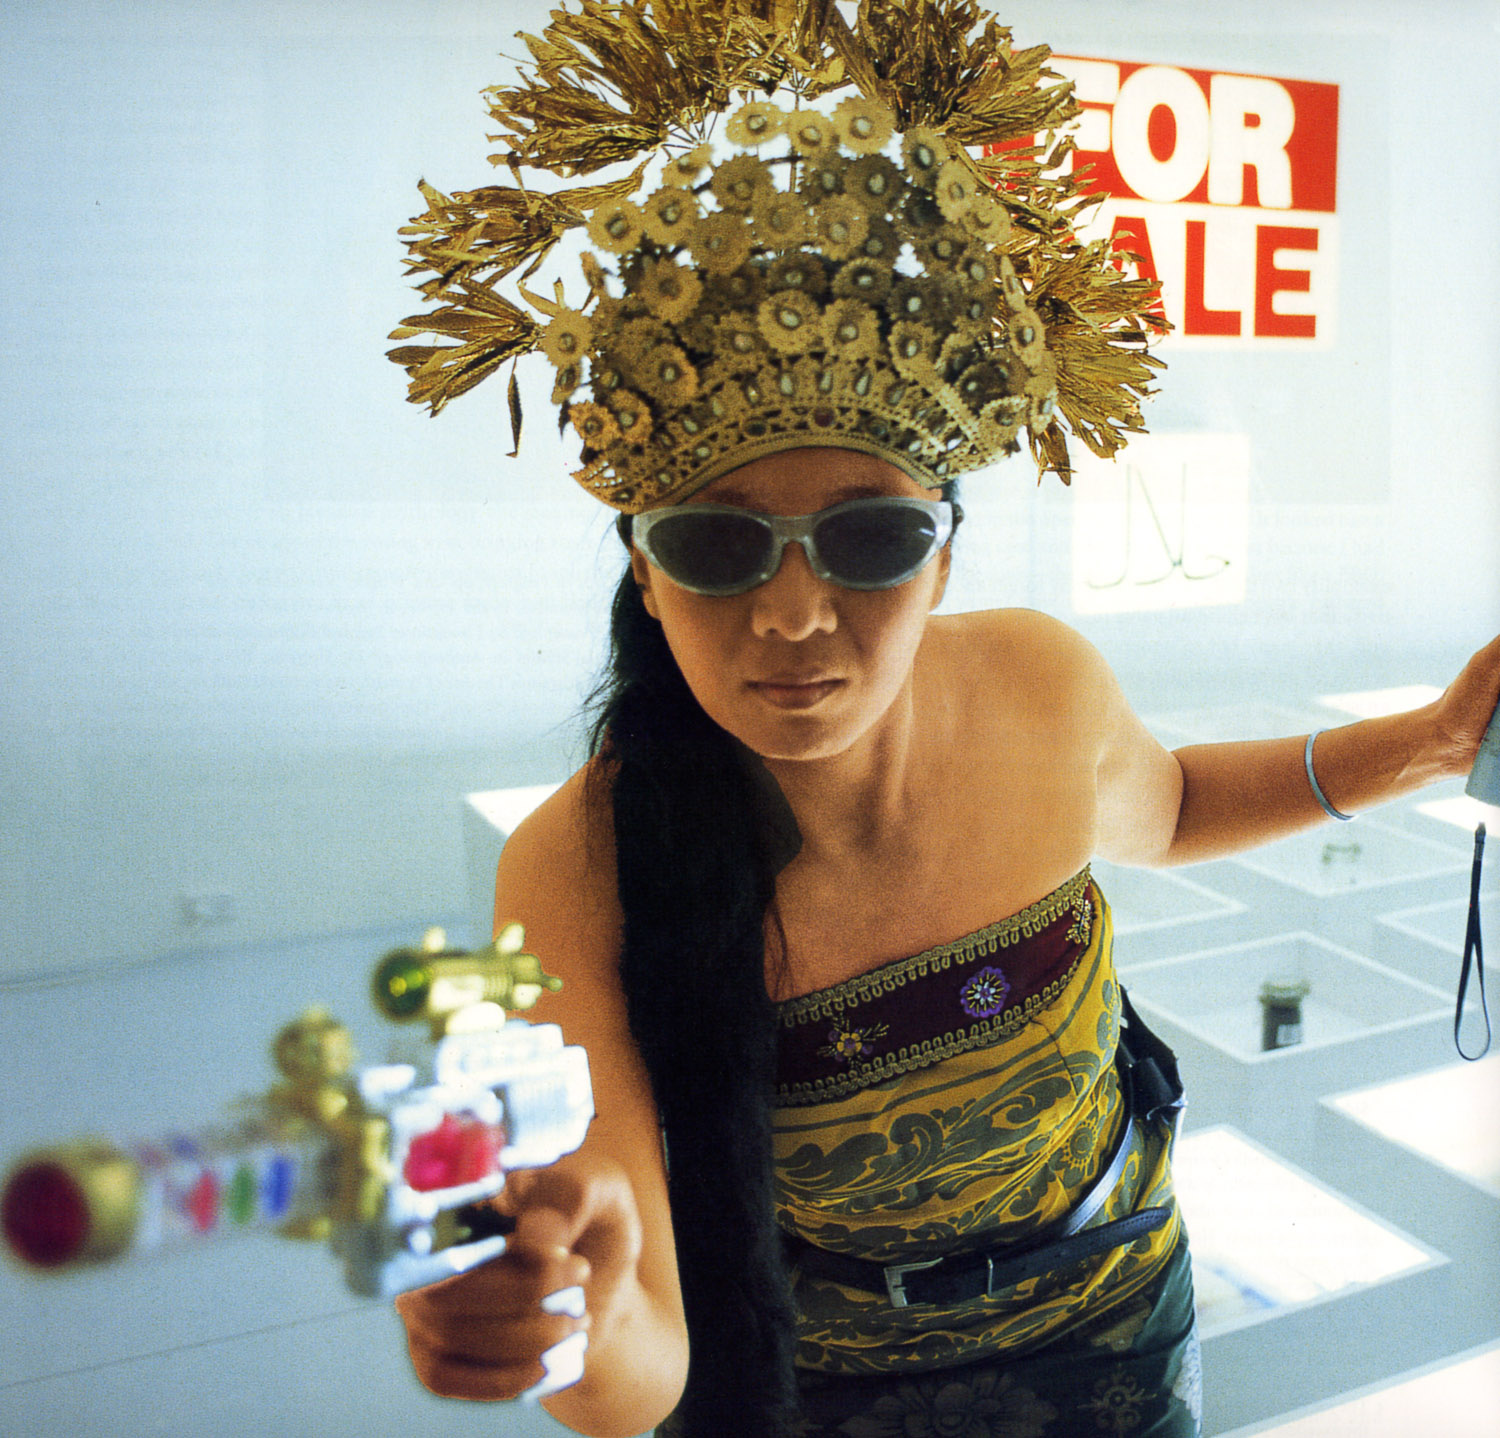 Arahmaiani, 'Handle without Care', 1996-2017, Performance at the 2nd Asia Pacific Triennial, Queensland Gallery of Modern Art, Brisbane, Australia, 1996. Image courtesy of the artist.